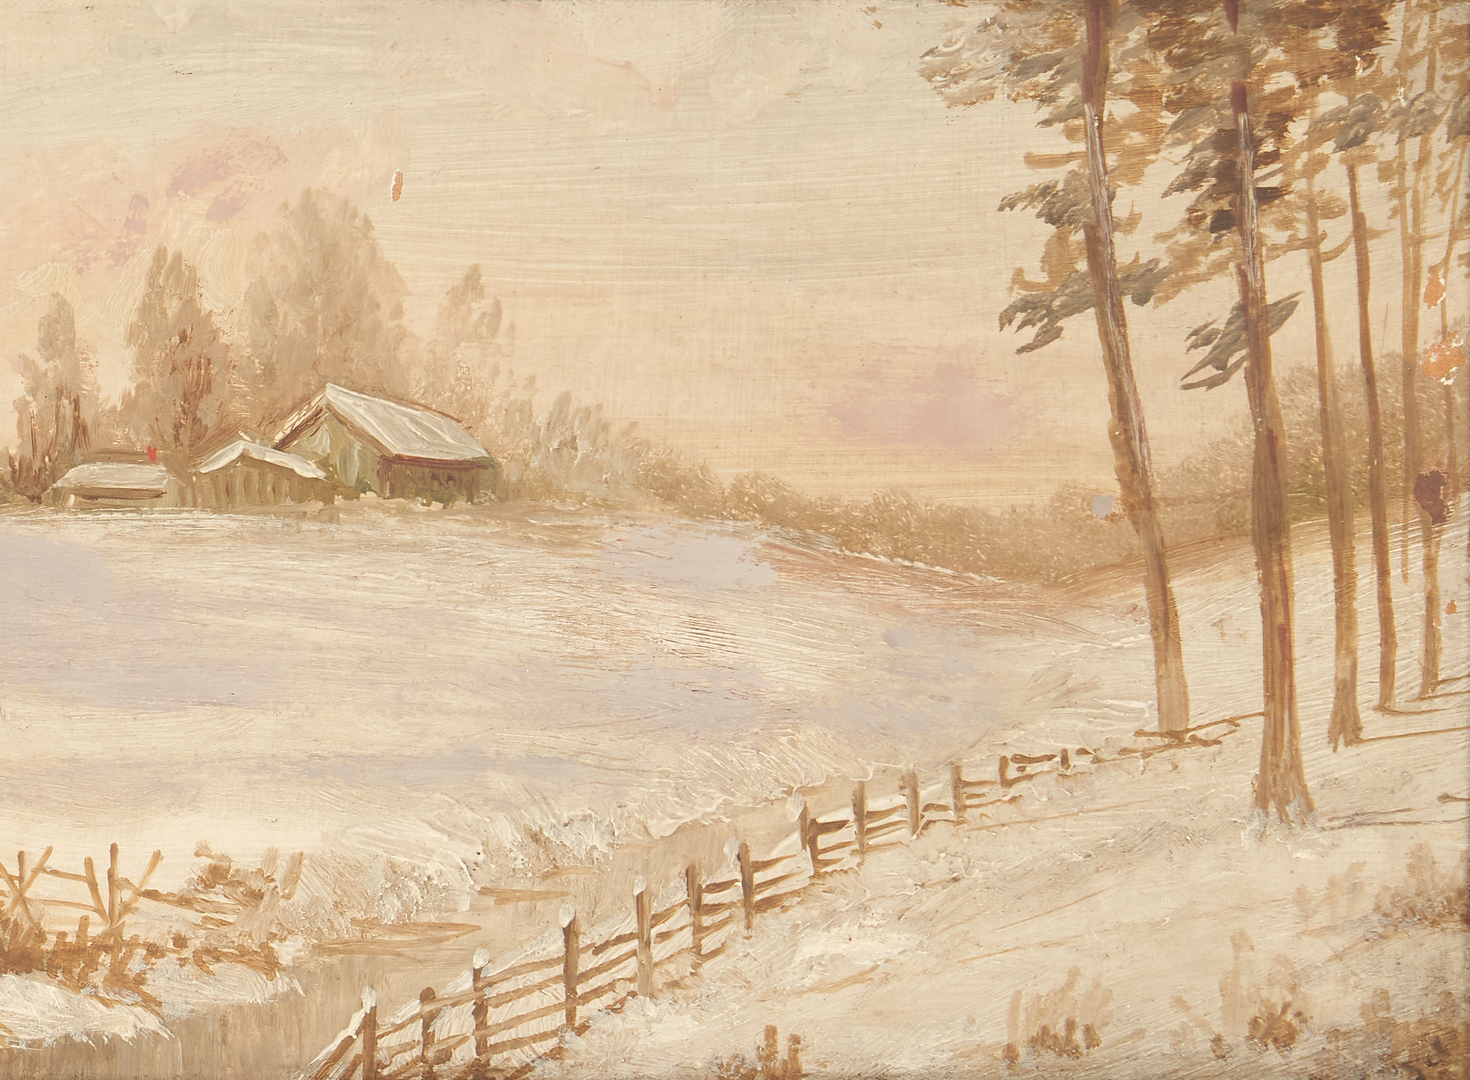 Lot 992: 2 Washington Girard paintings, Winter Landscape and Mountain in Spring